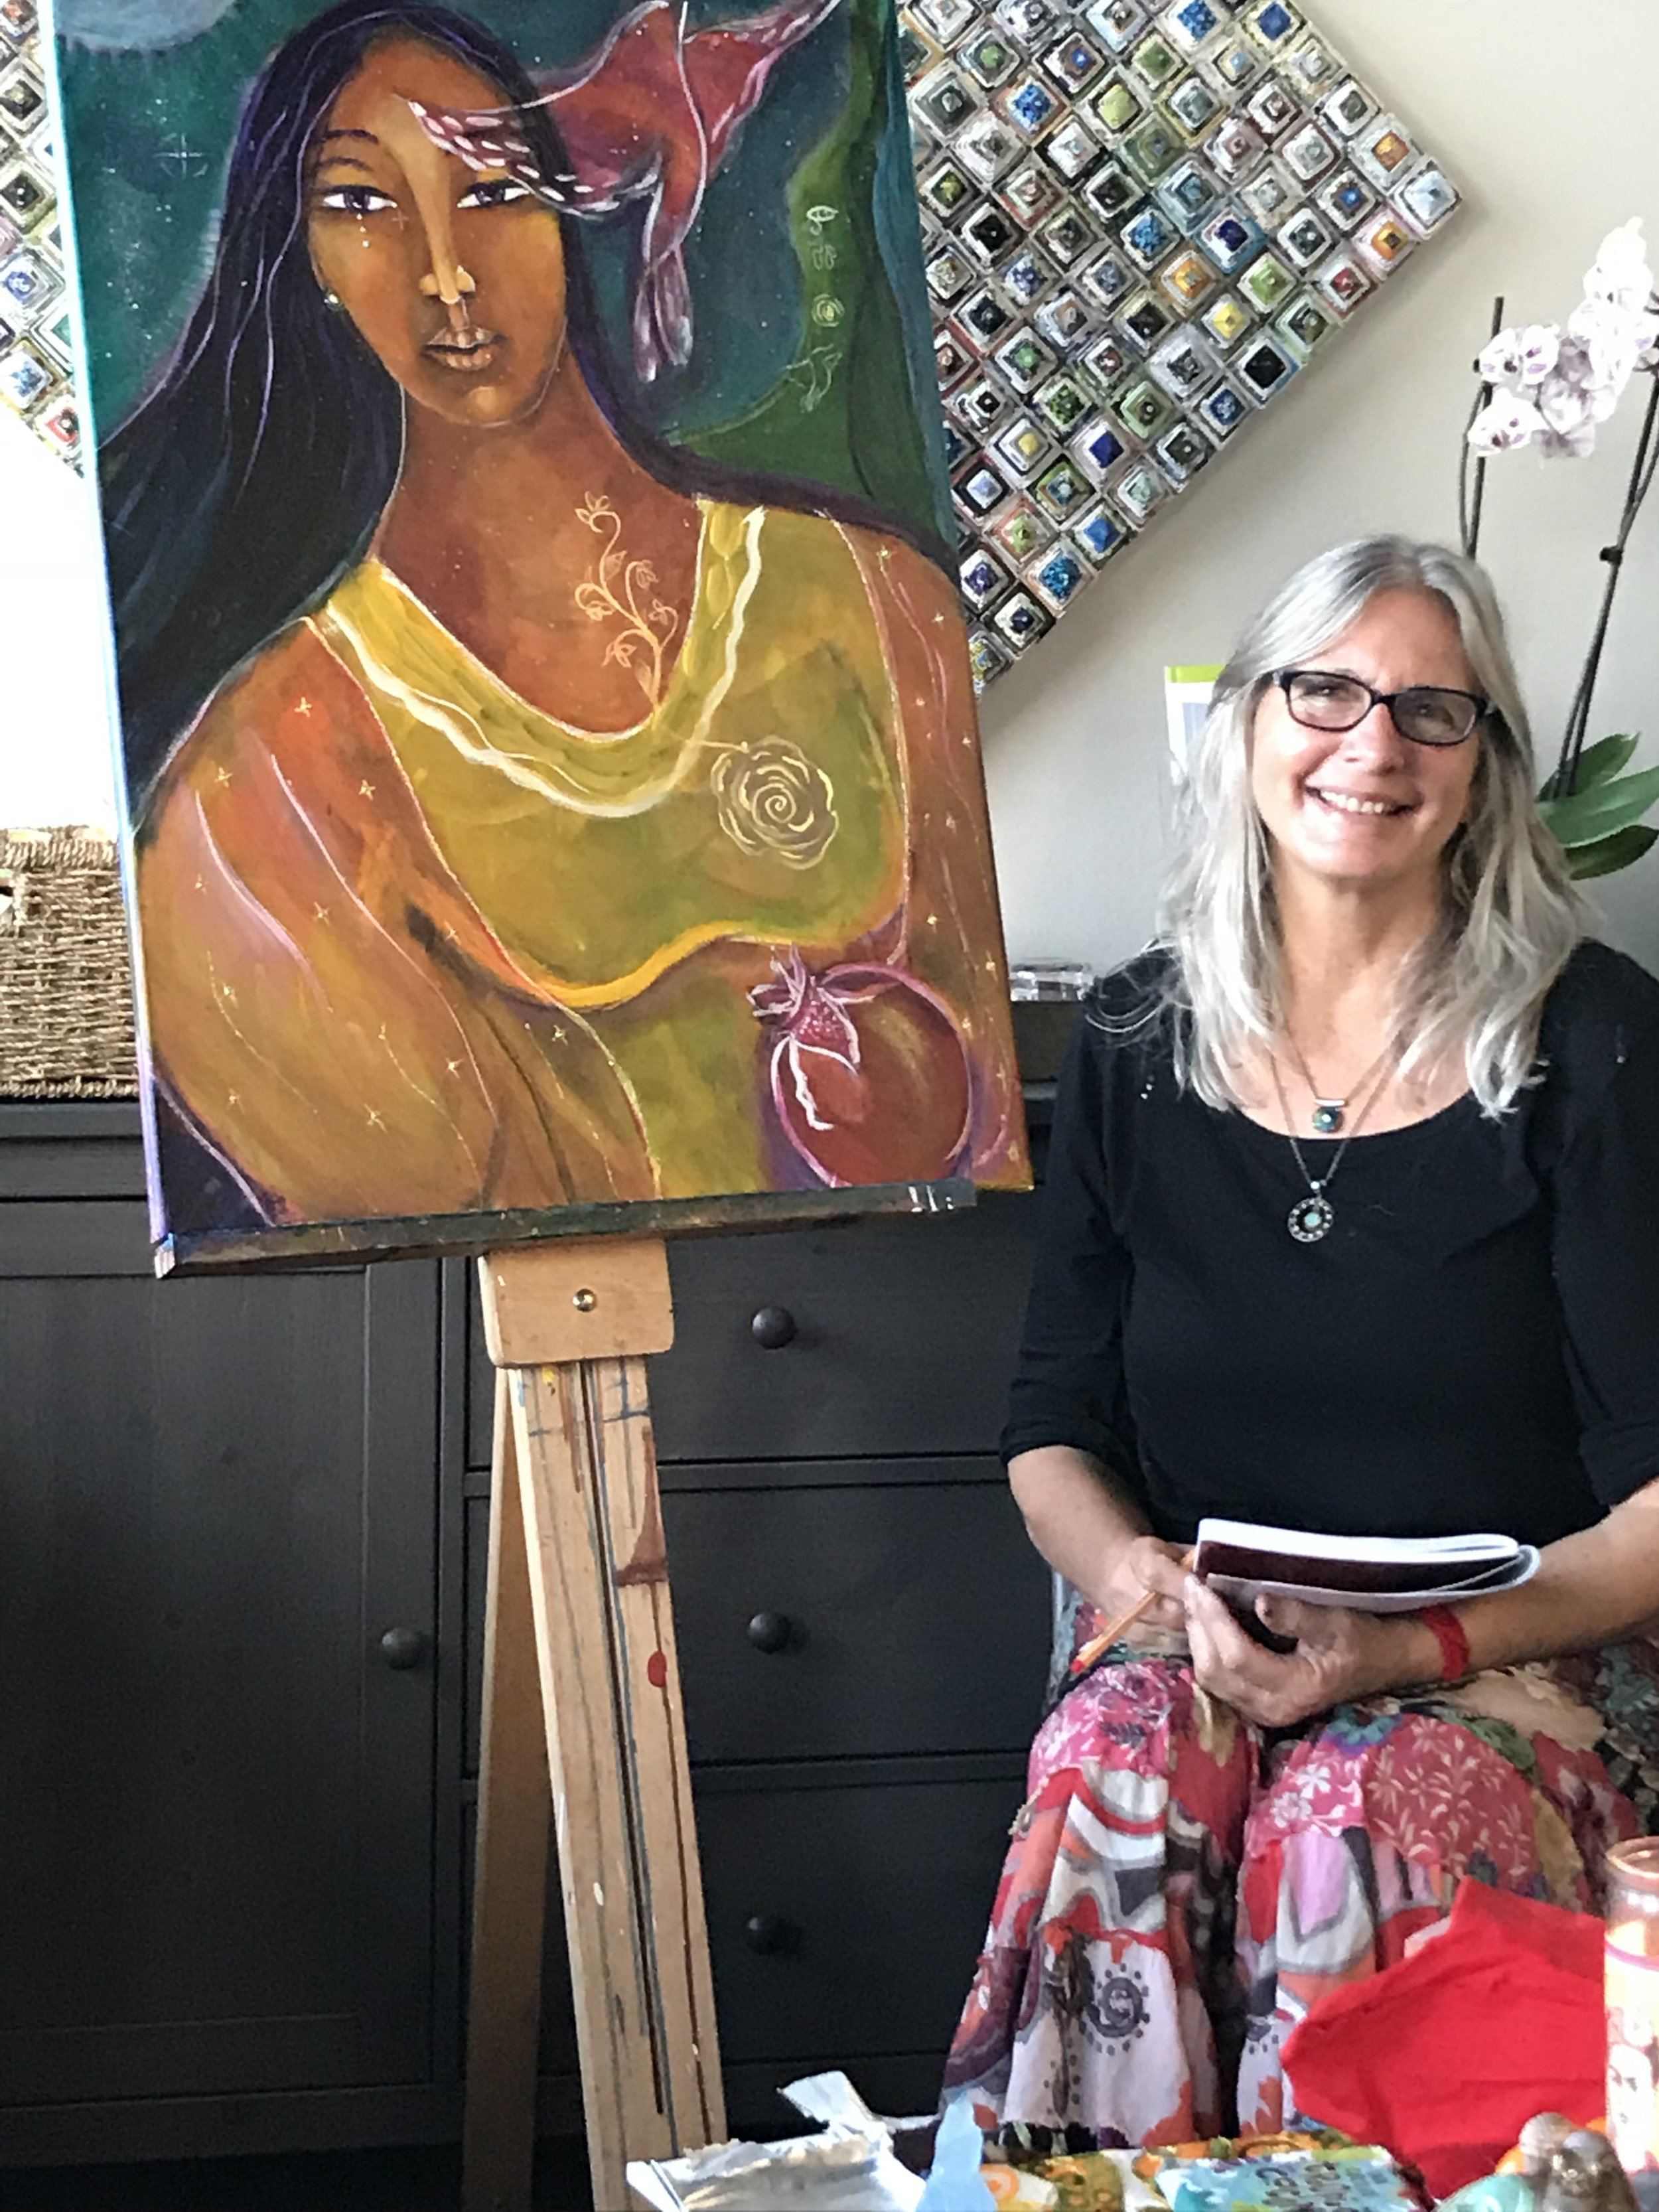 individual sessions with Olivia - Whether you're a regular painter or a new artist Olivia Marie will support and guide you through the creative process through one on one mentoring.